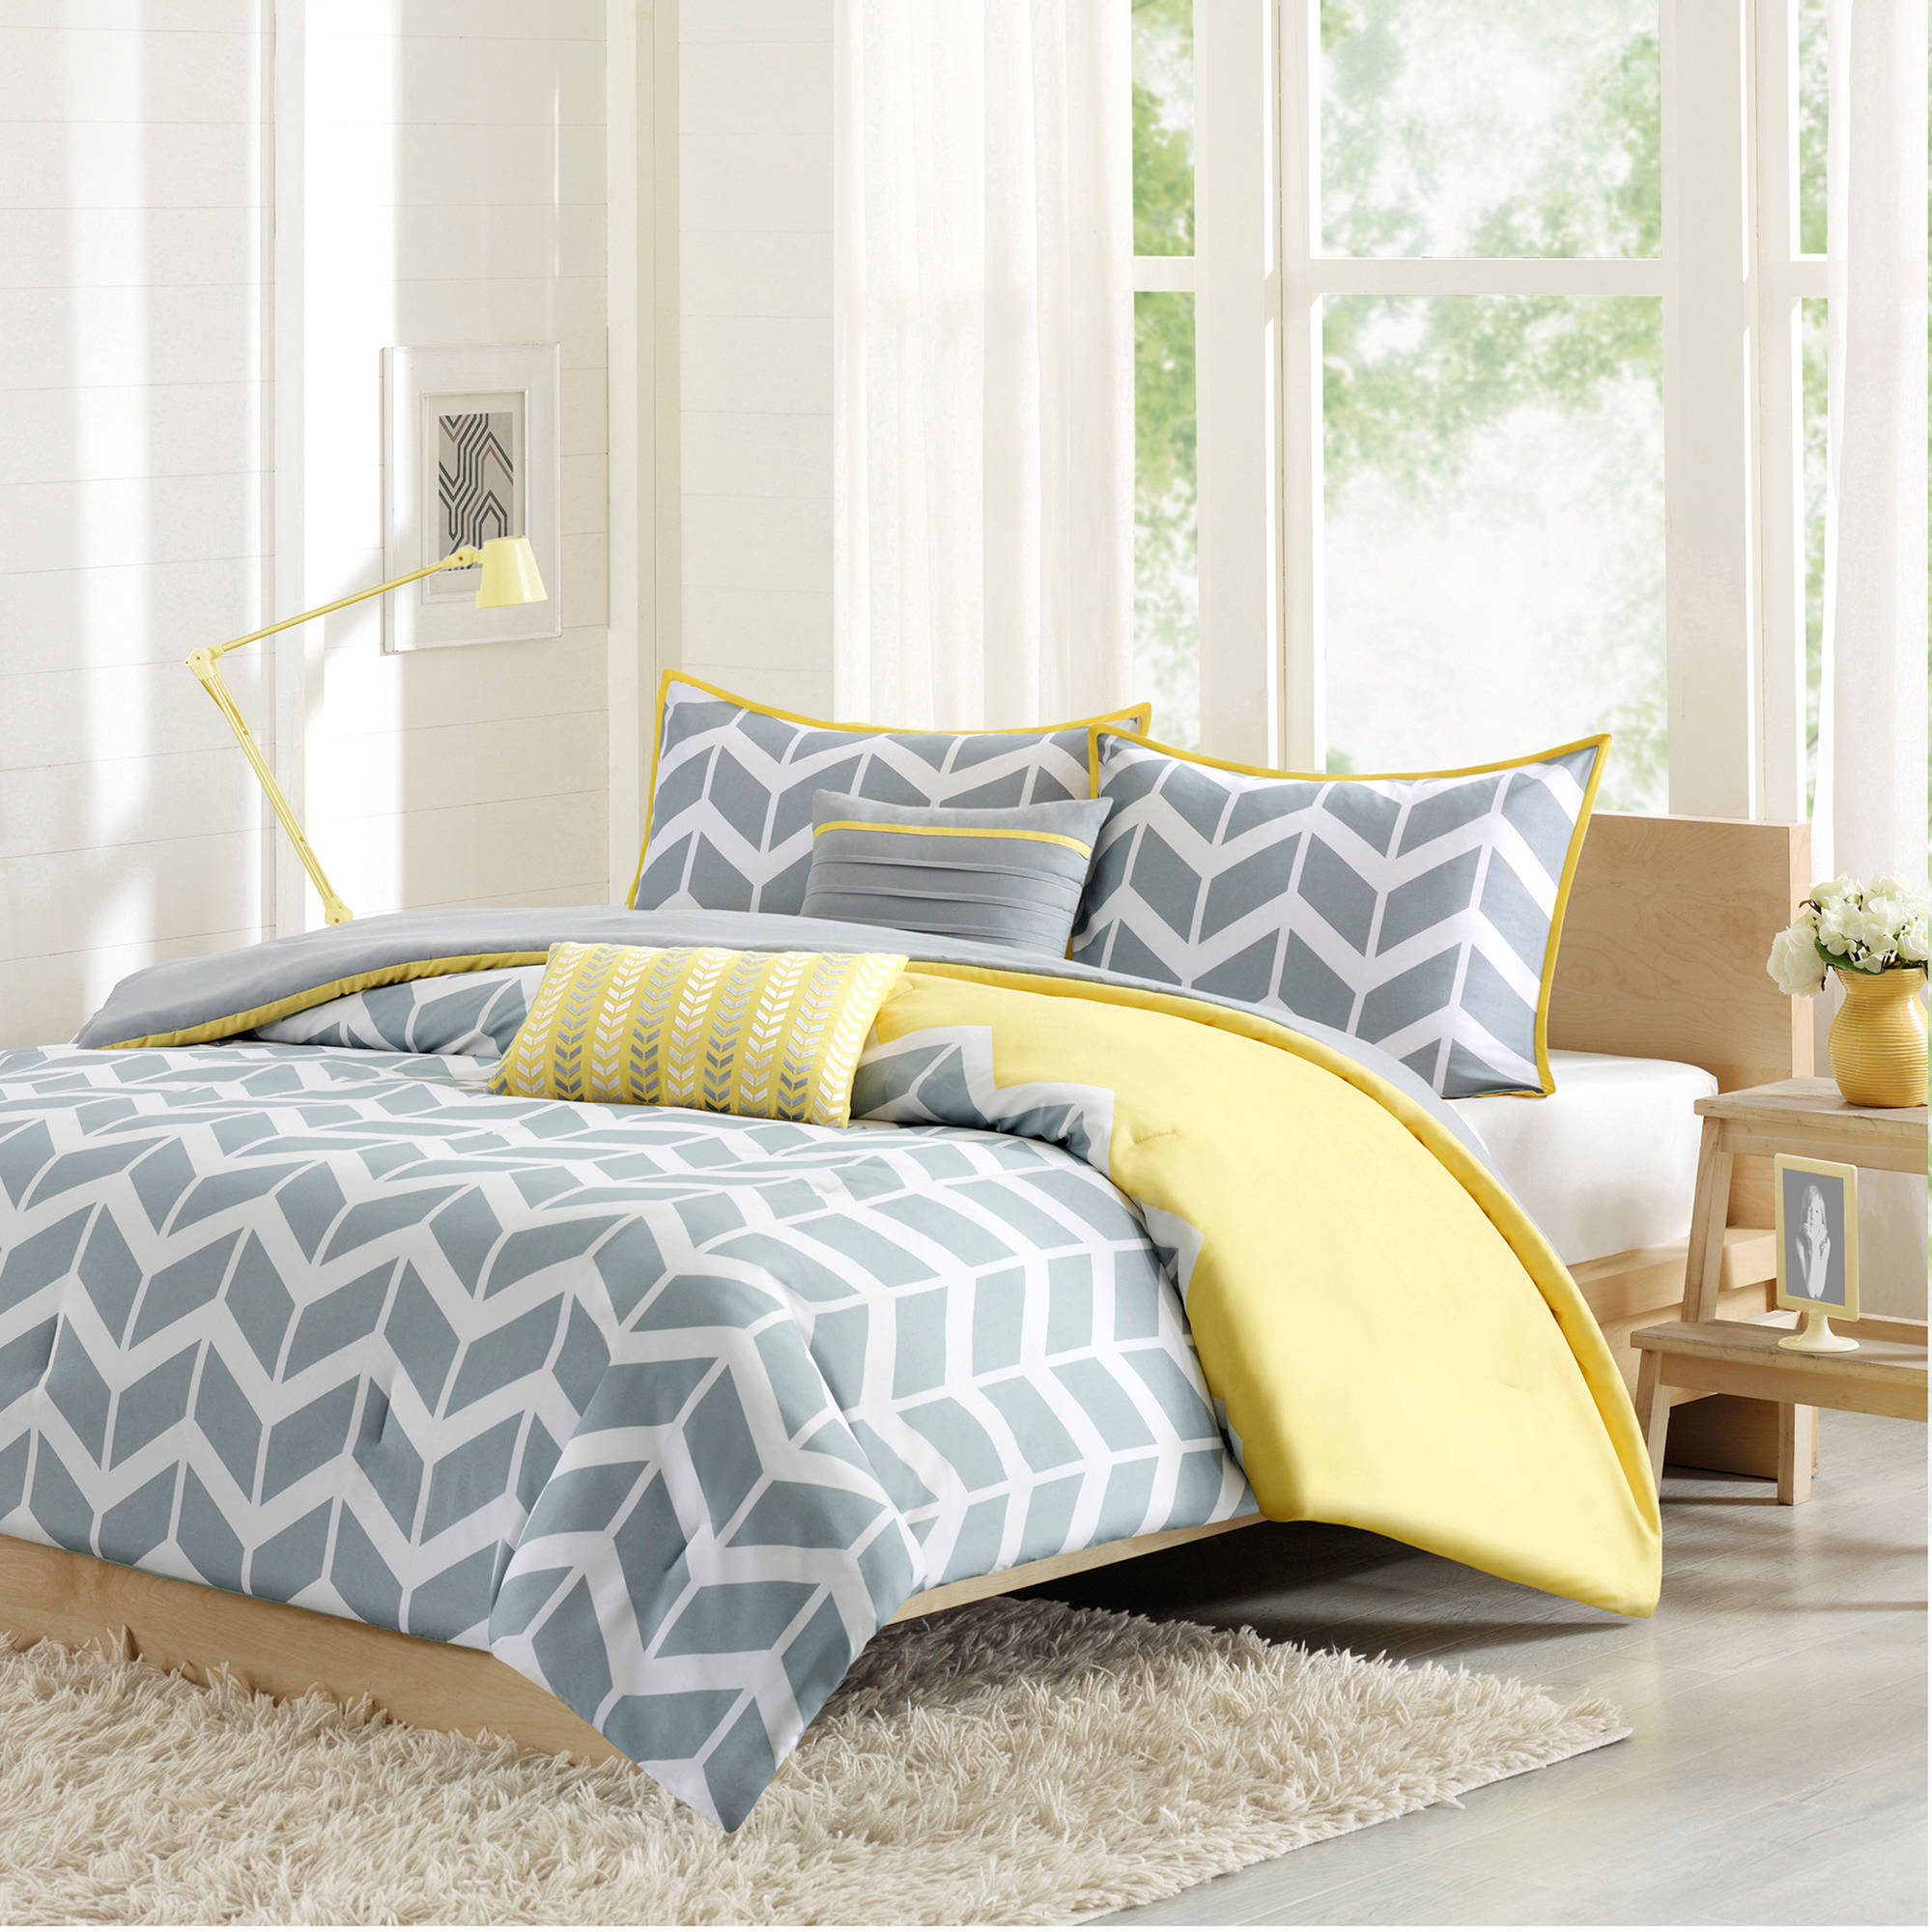 Yellow and grey bedding twin - Yellow And Grey Bedding Twin